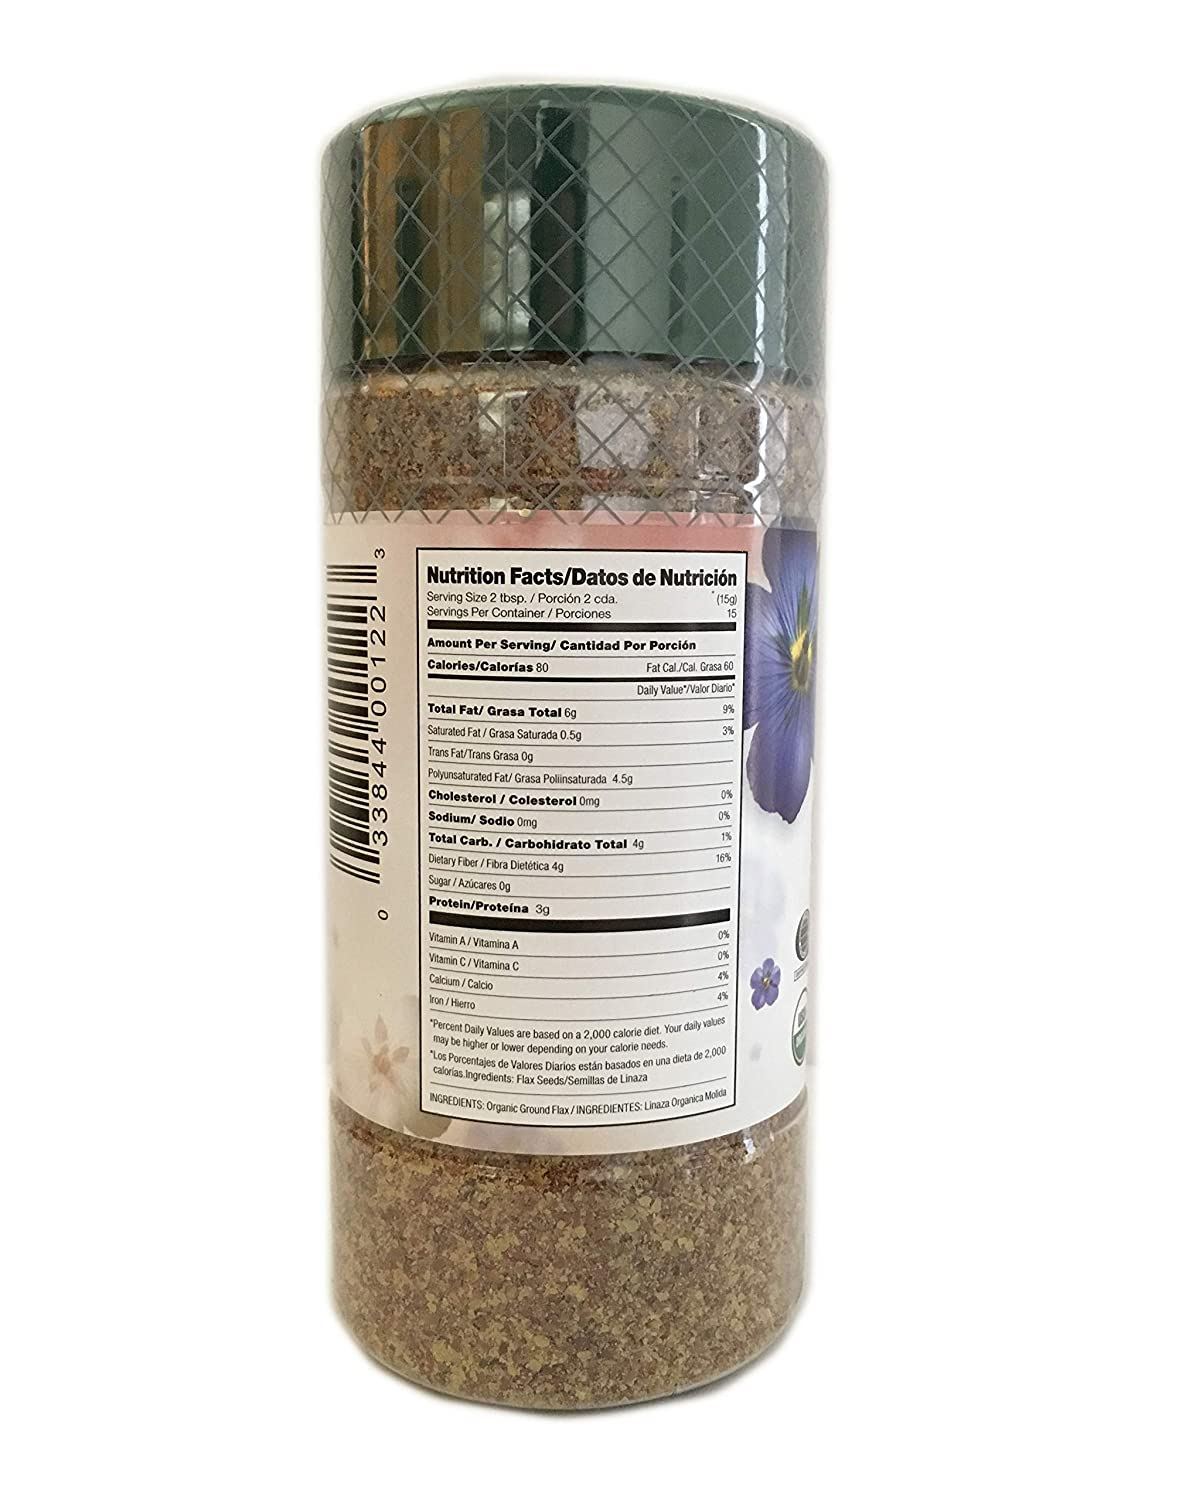 Amazon.com : 7.5 oz Organic Ground Flax Seed/Linaza Molida en Polvo Free Gluten Kosher : Grocery & Gourmet Food